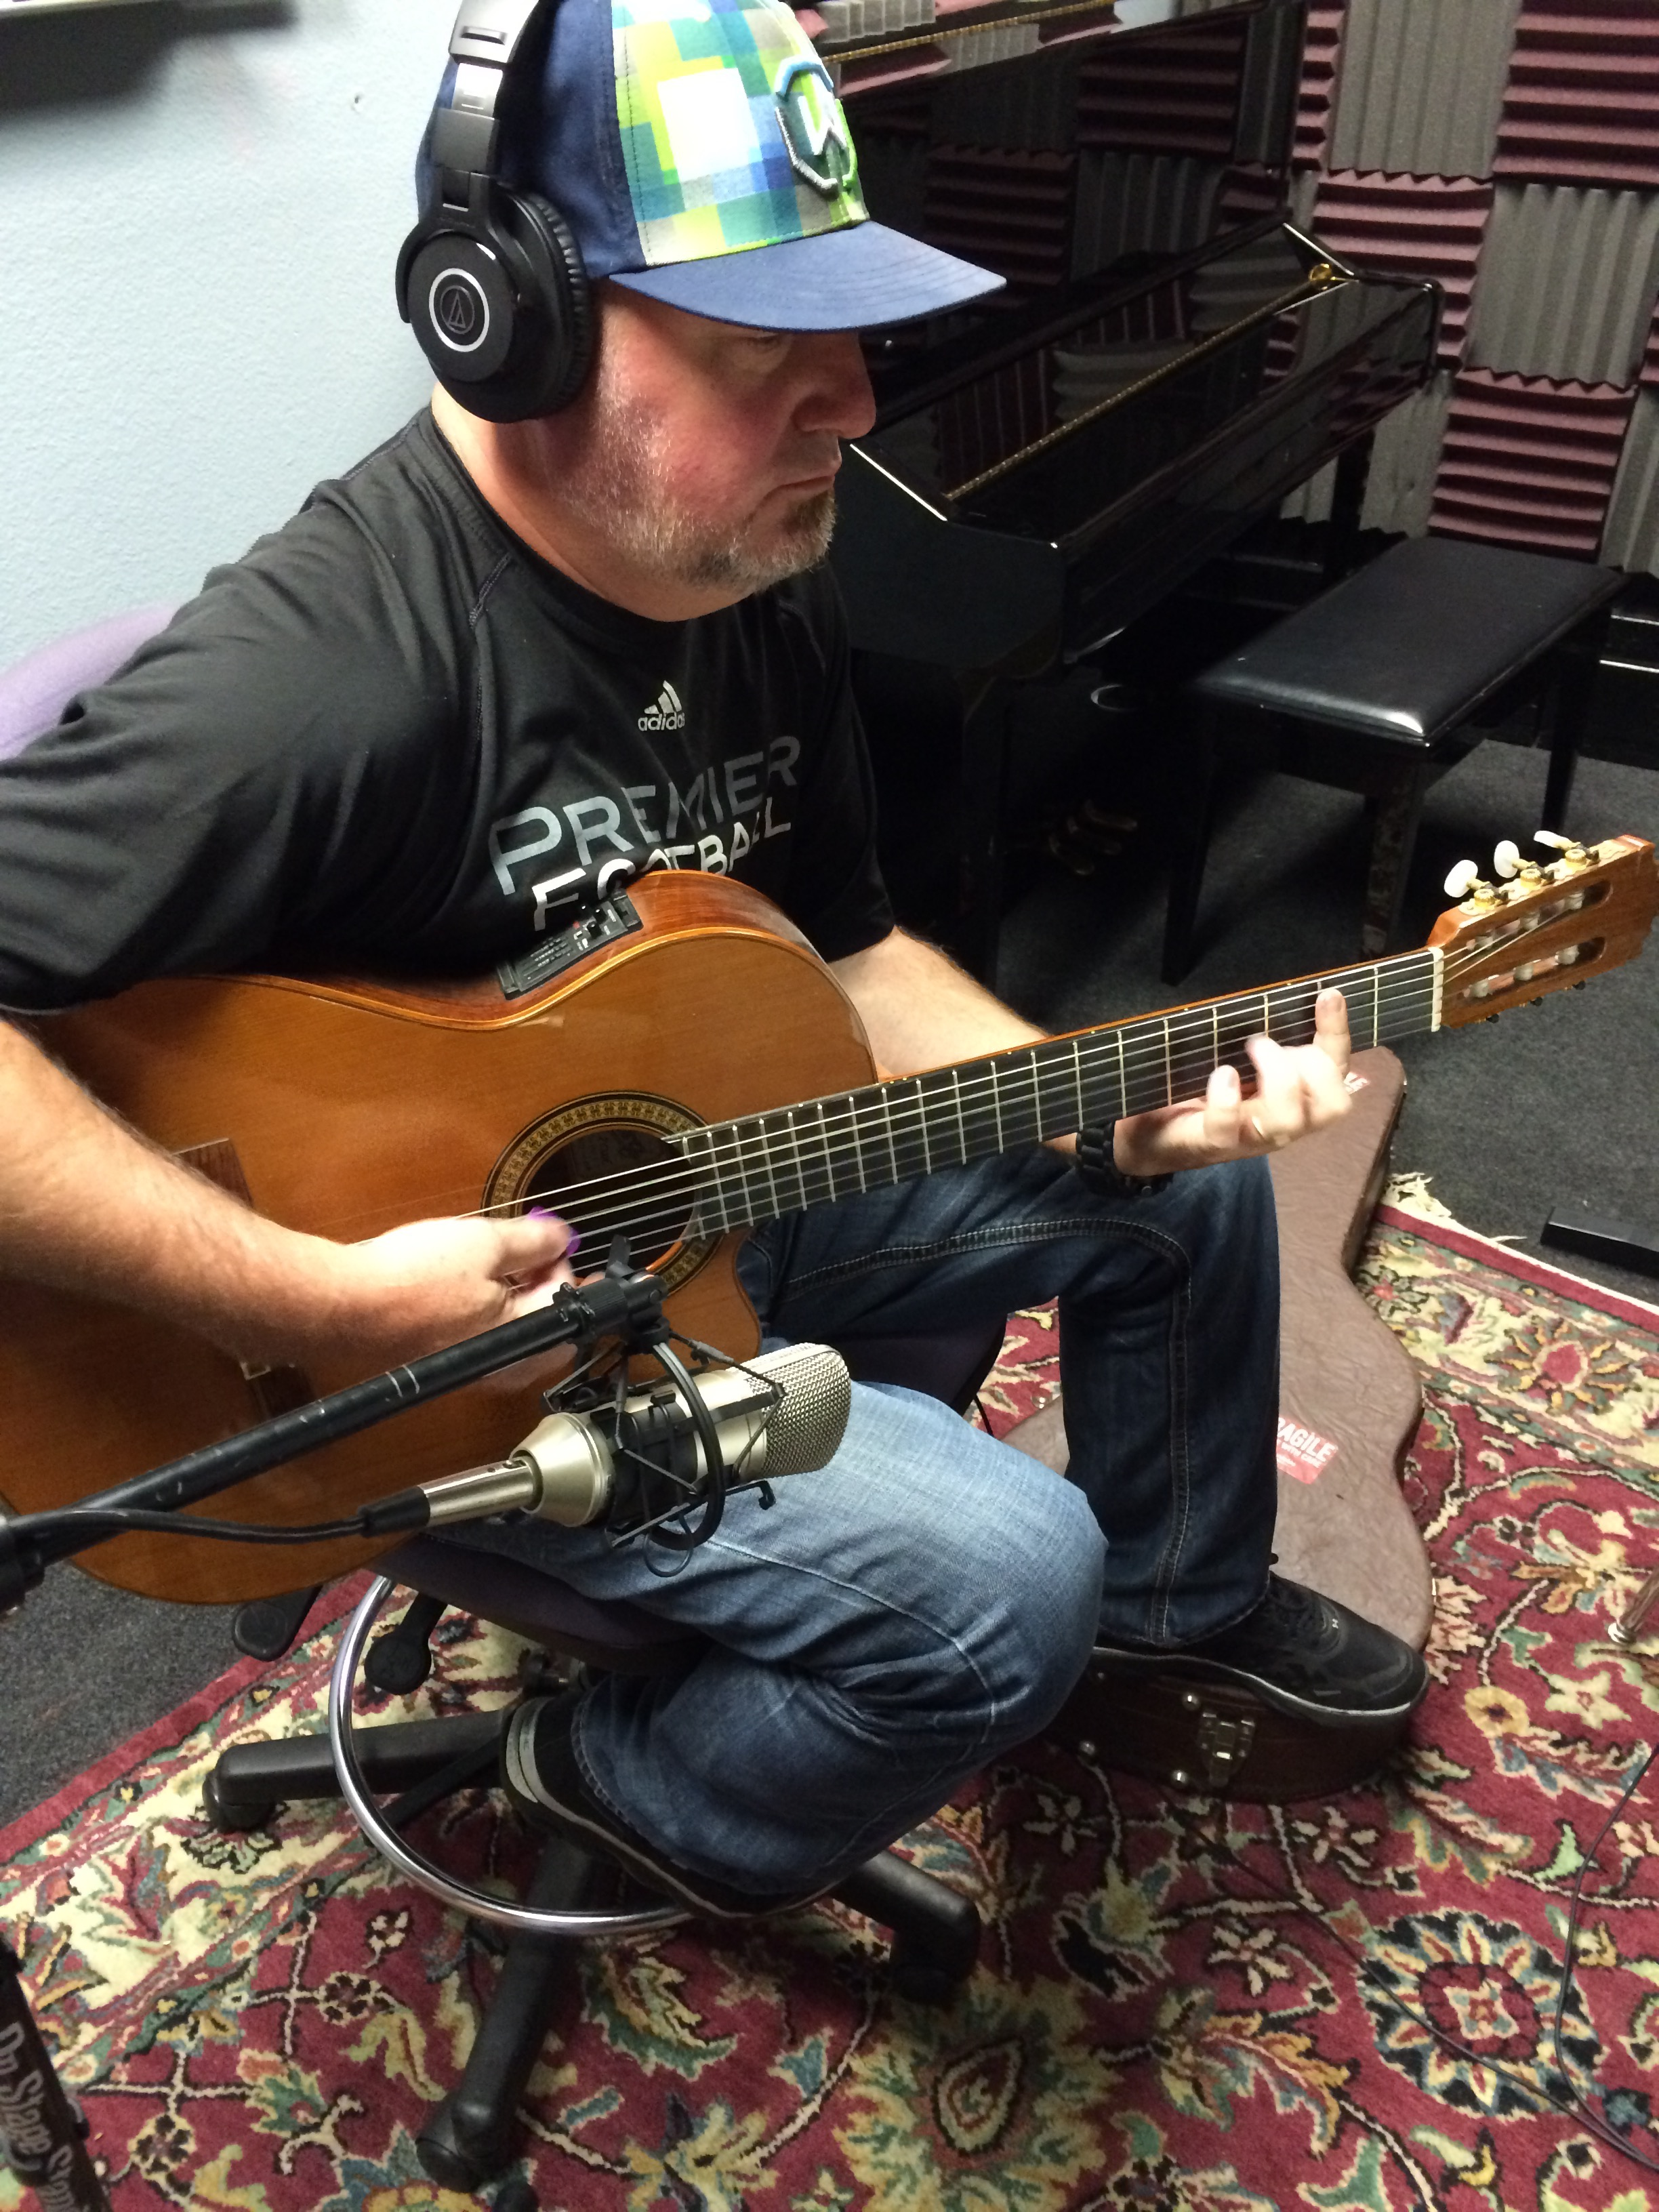 Guitarist in Studio